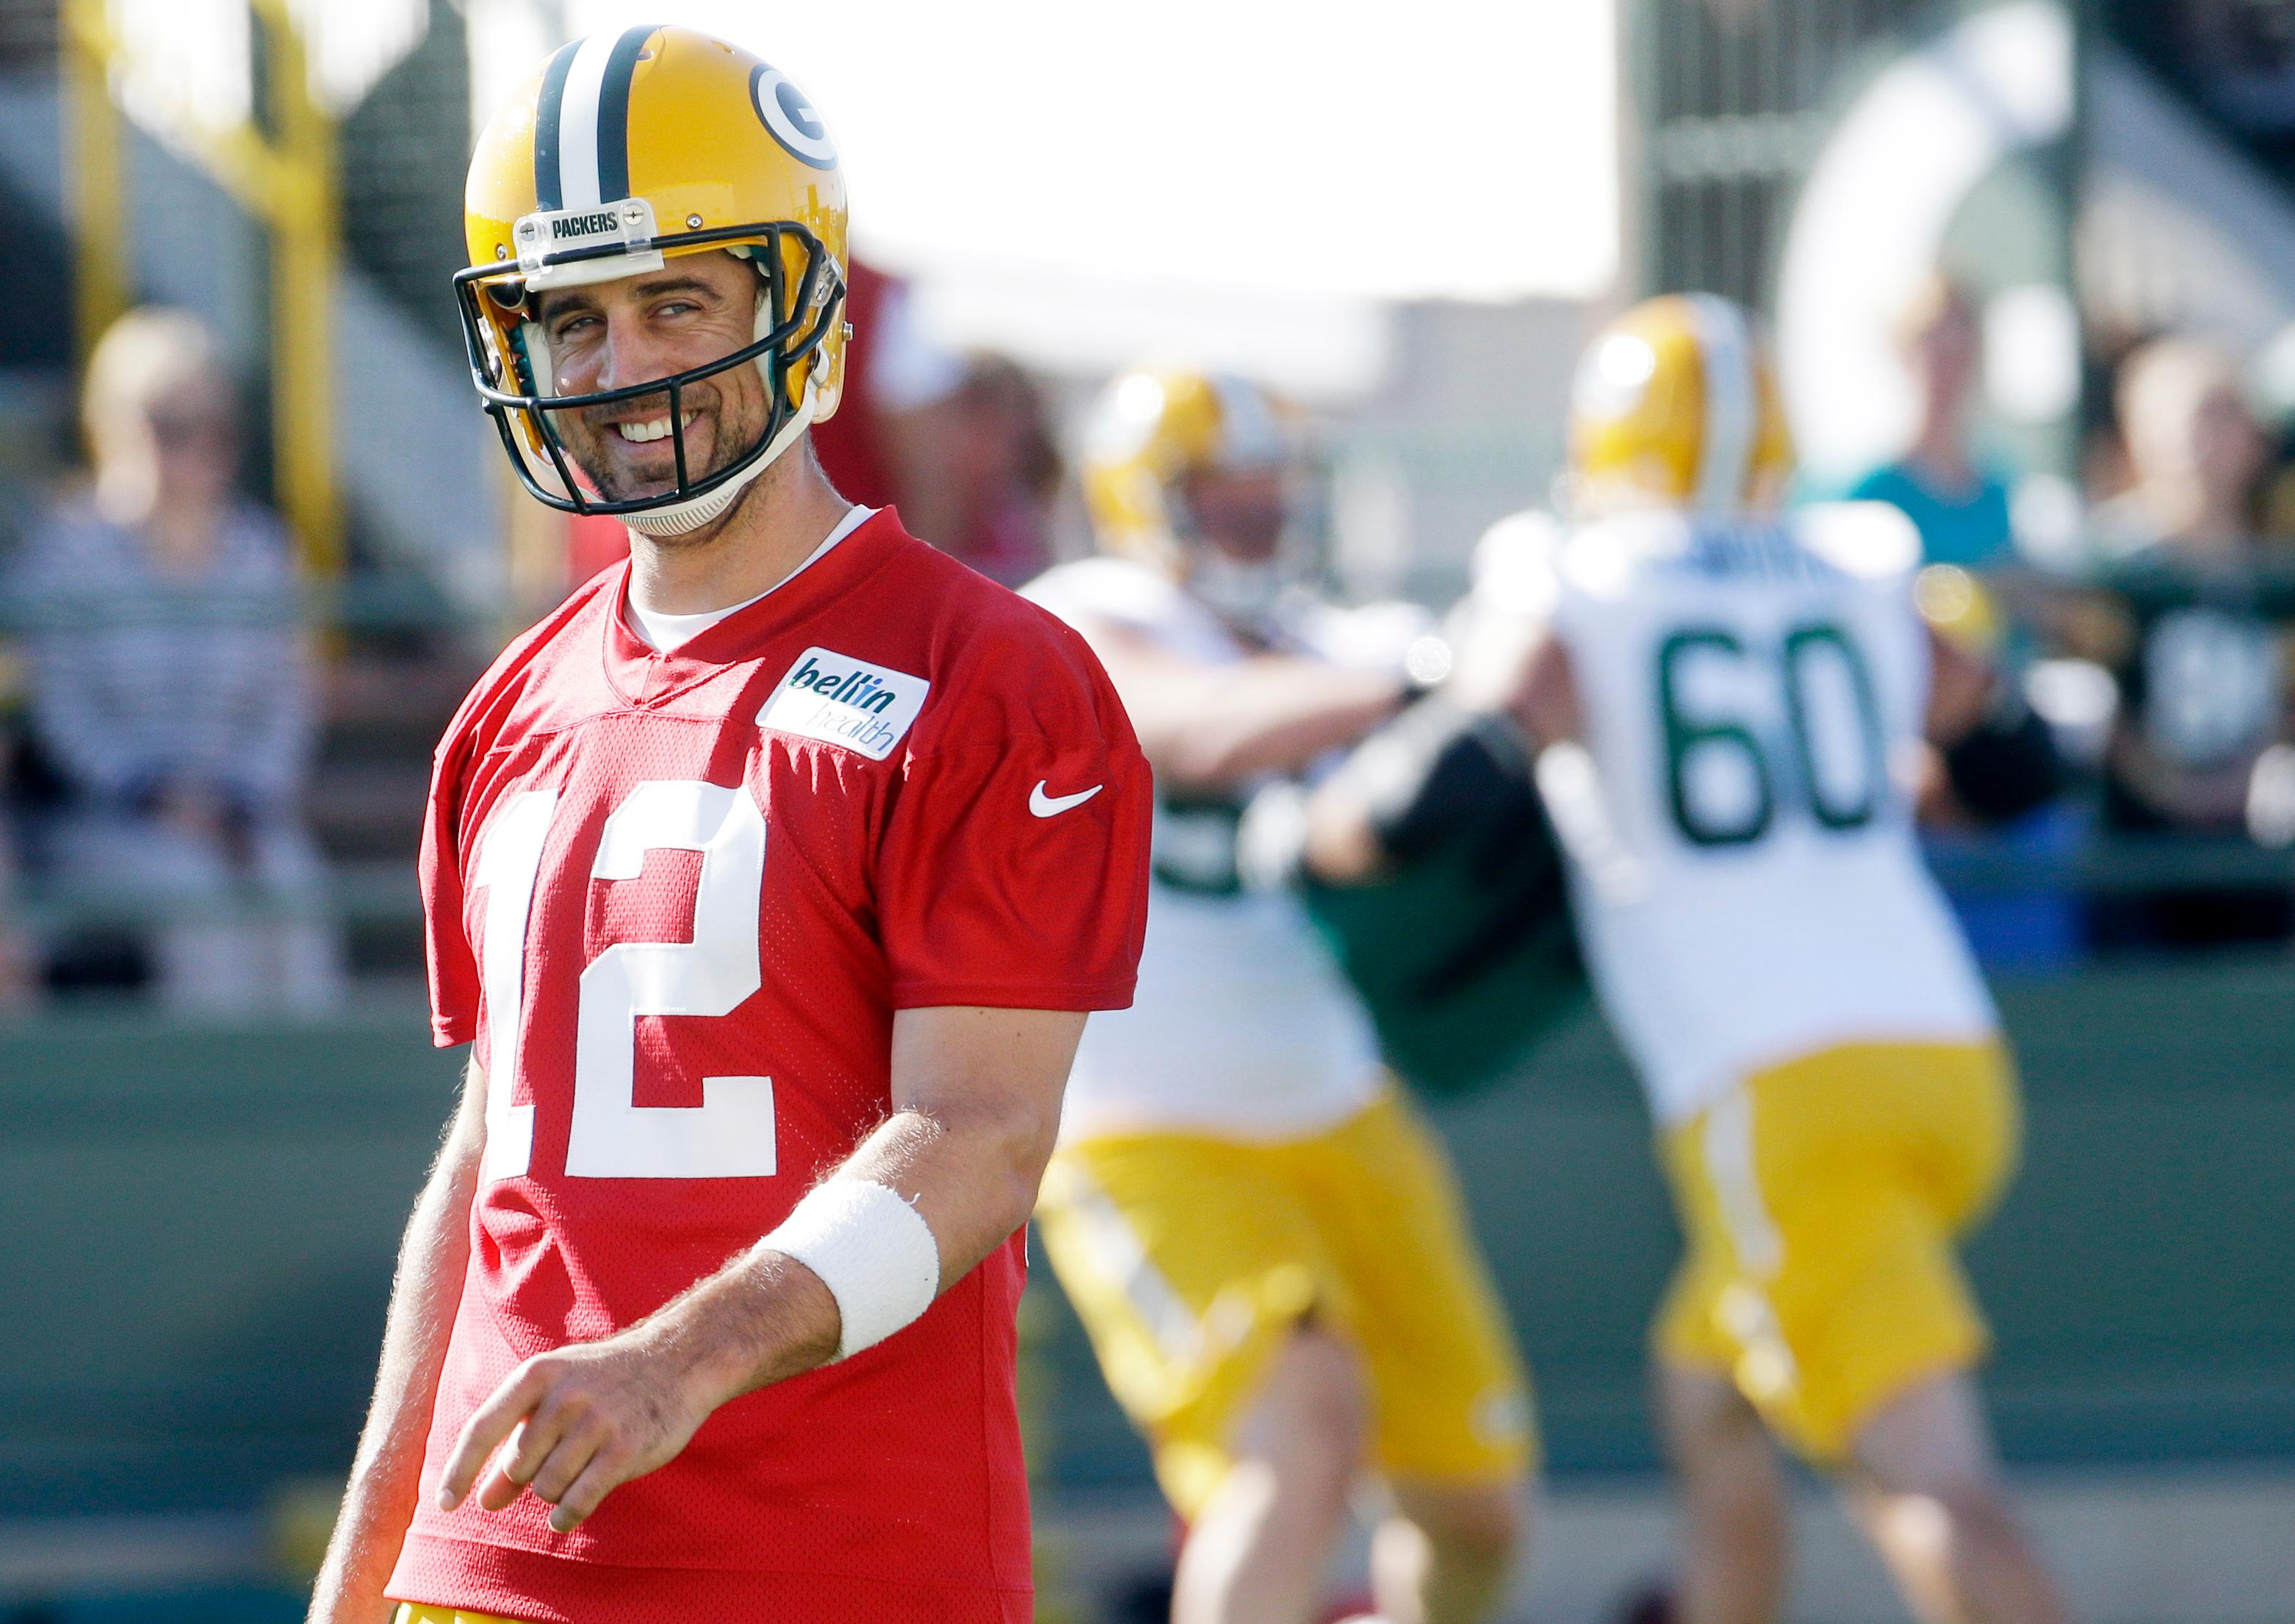 FILE- In this July 30, 2015, file photo, Green Bay Packers' Aaron Rodgers smiles during NFL football training camp in Green Bay, Wis. NASCAR driver Danica Patrick, a noted Chicago Bears fan, confirmed Monday. Jan. 15, 2018, she is dating Rodgers.   (AP Photo/Morry Gash, File)